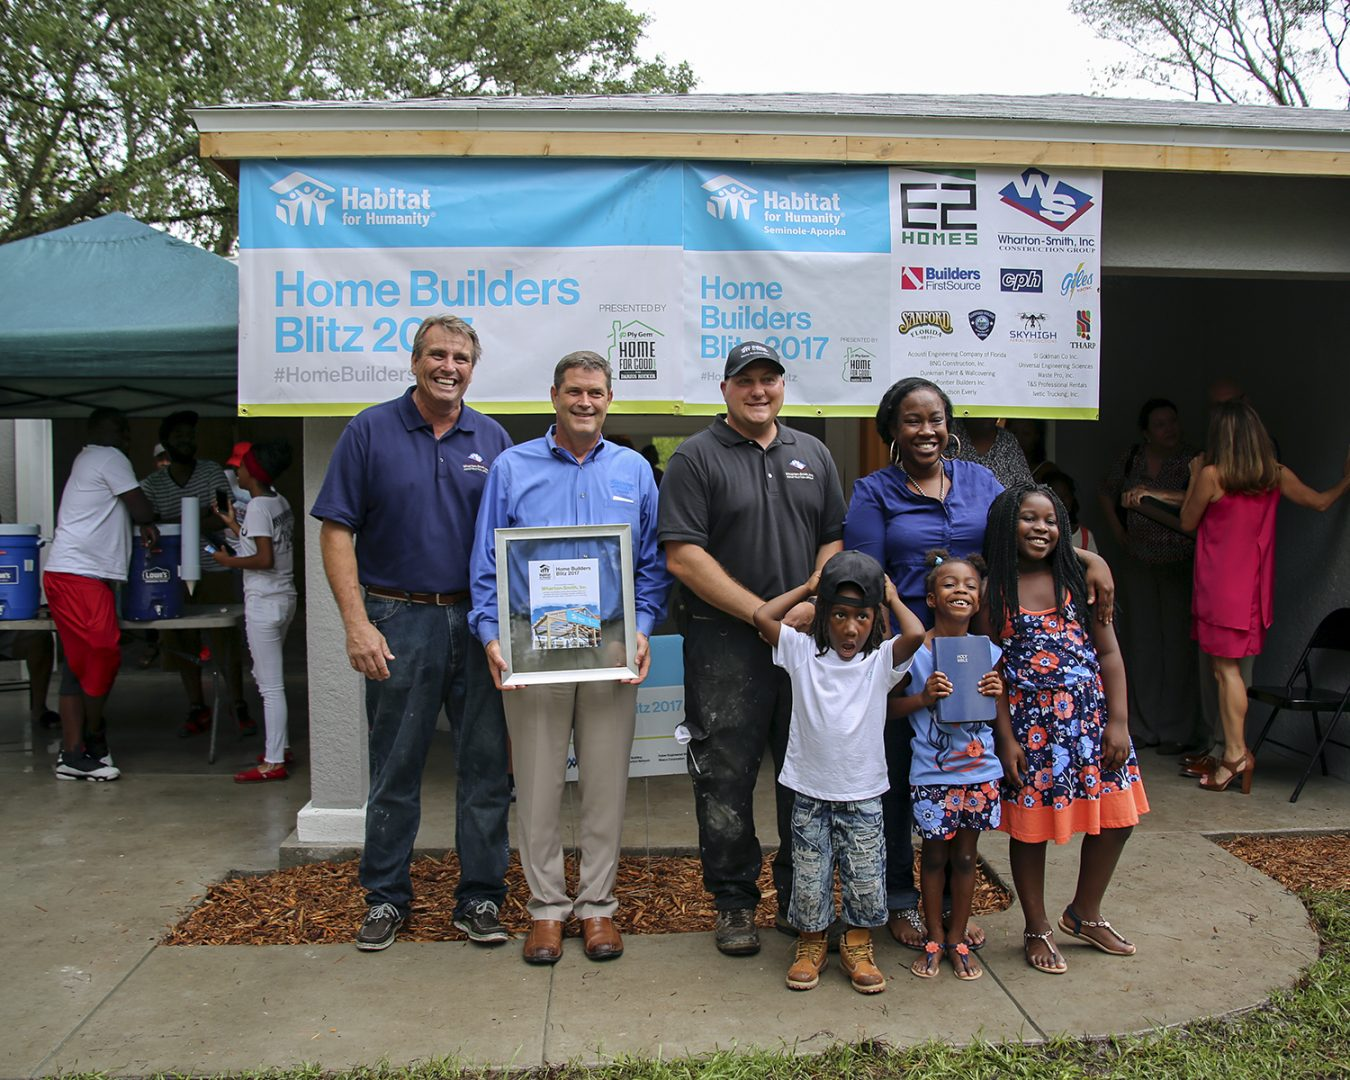 Wharton-Smith Participates in Habitat for Humanity Home Builders Blitz